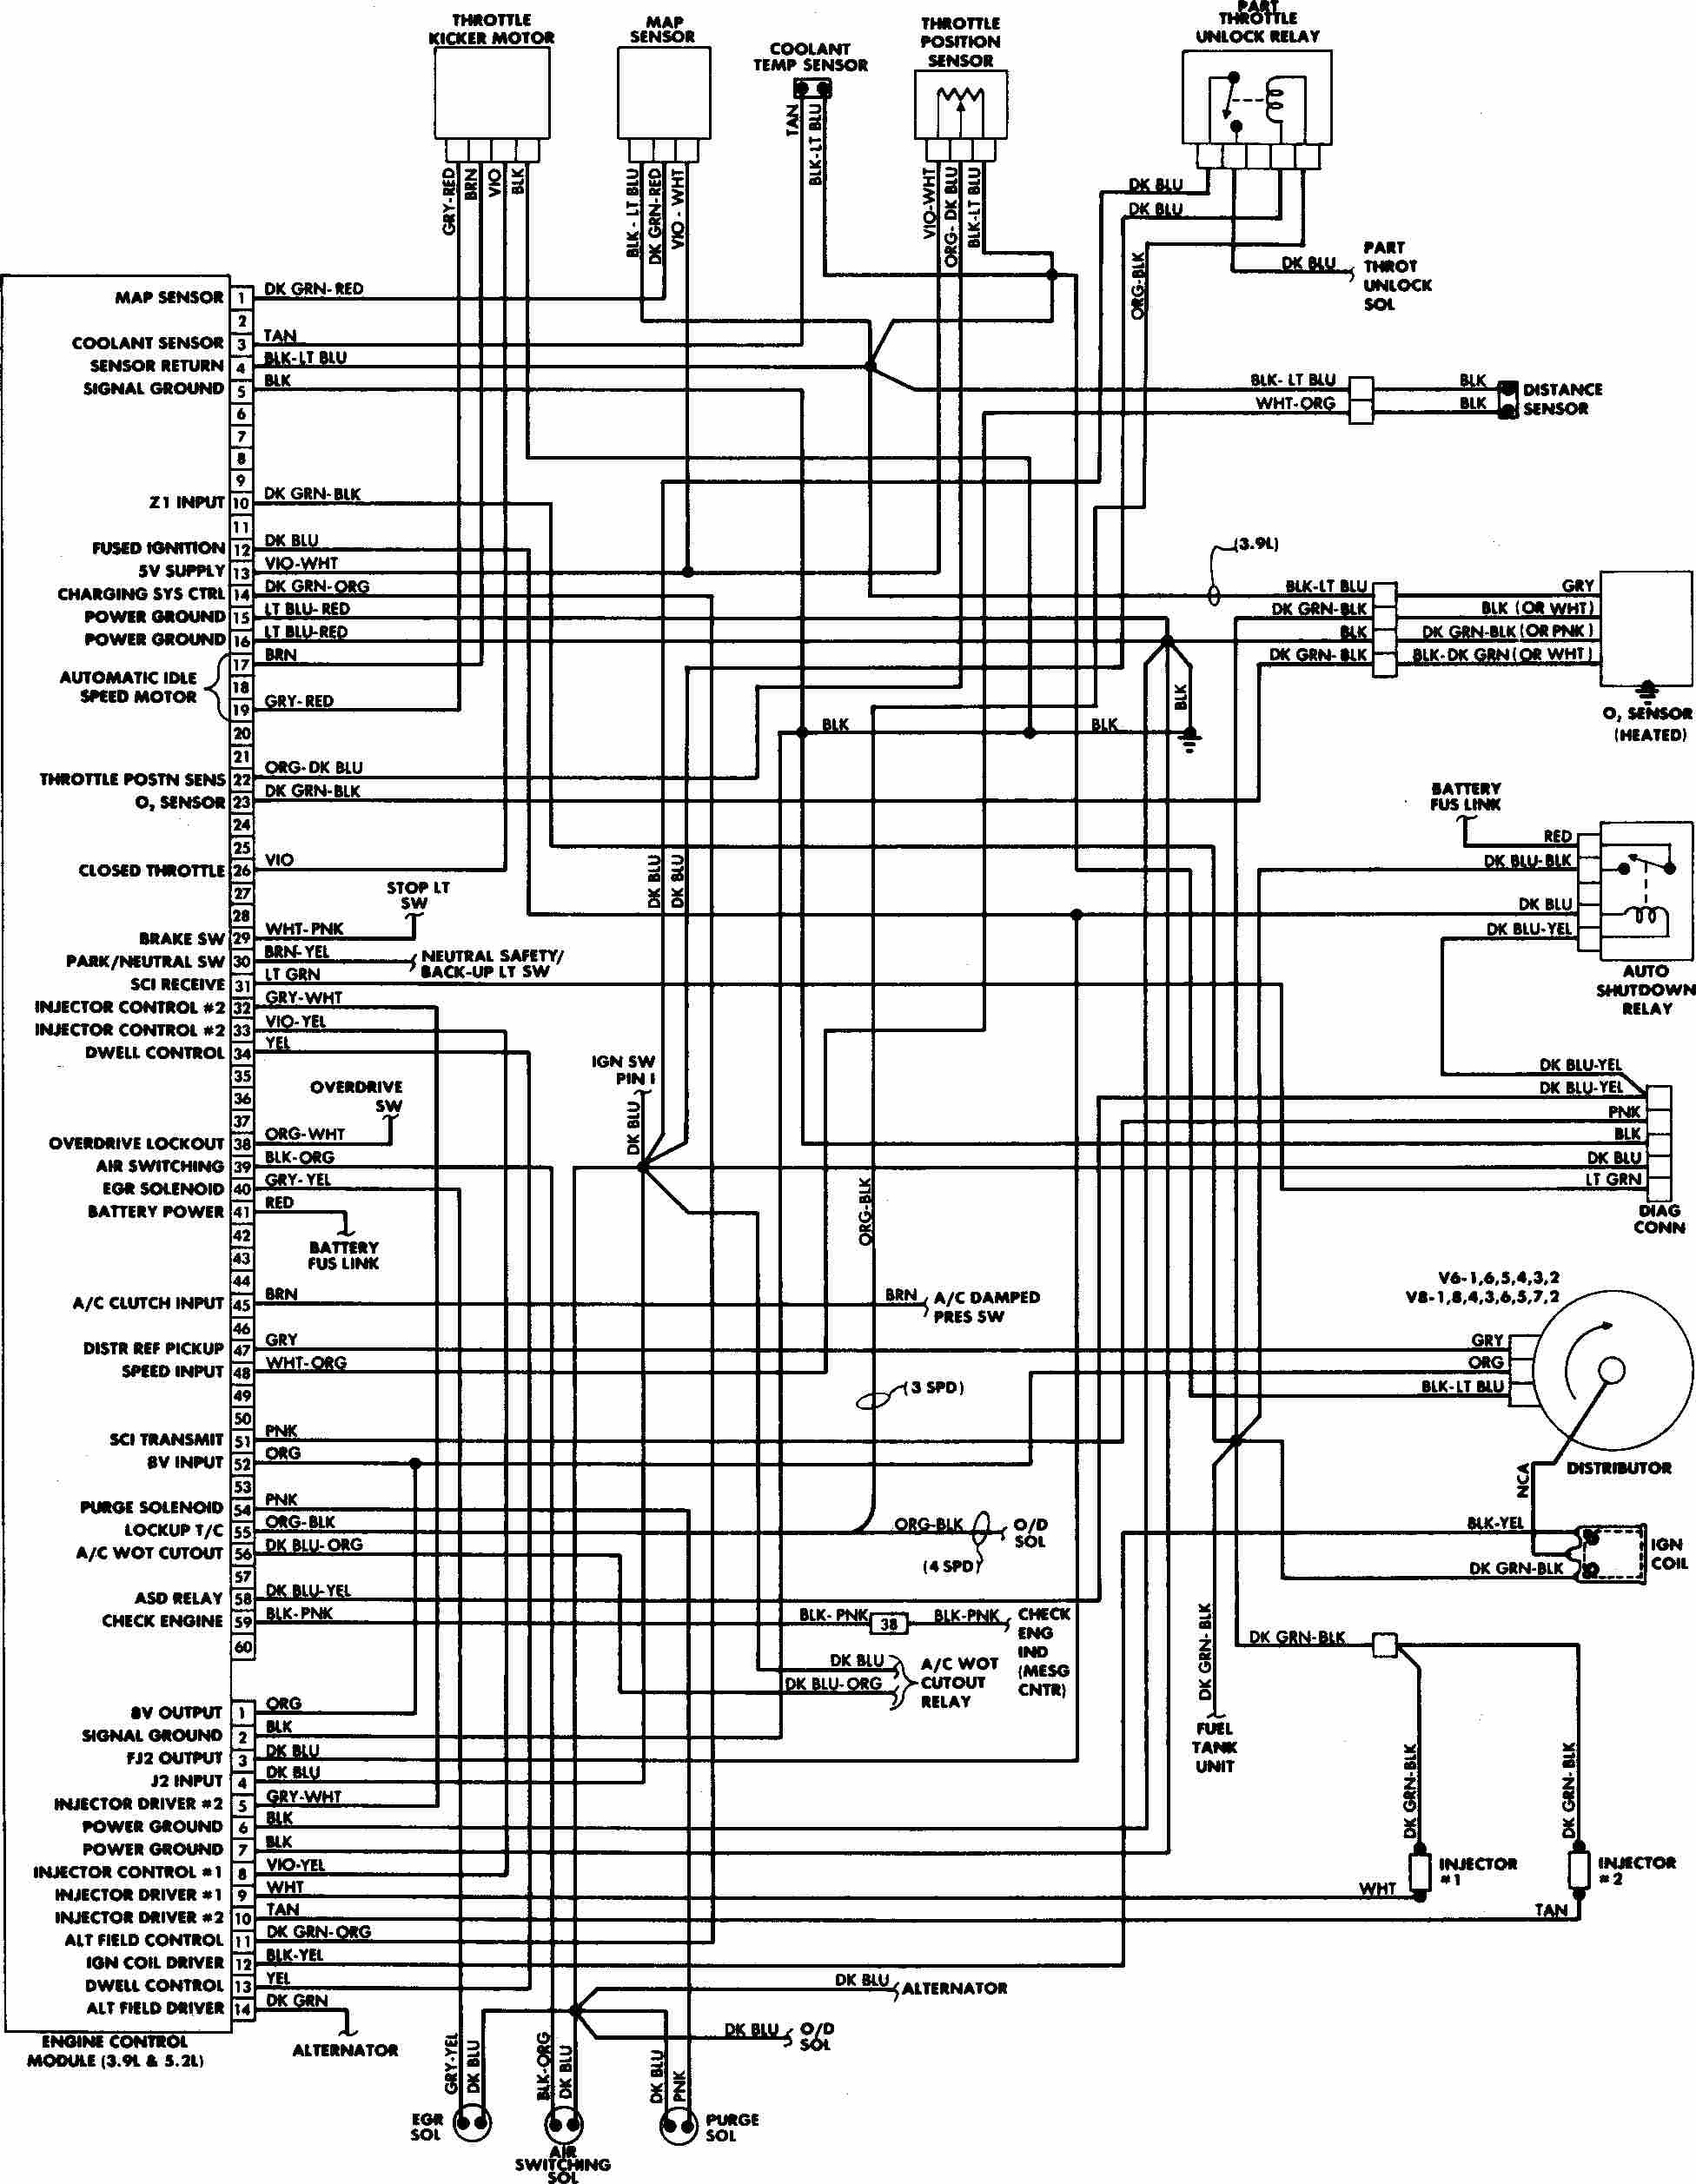 Dodge Neon Engine Diagram Dodge Neon Alternator Location Get Free Image About Wiring Diagram Of Dodge Neon Engine Diagram